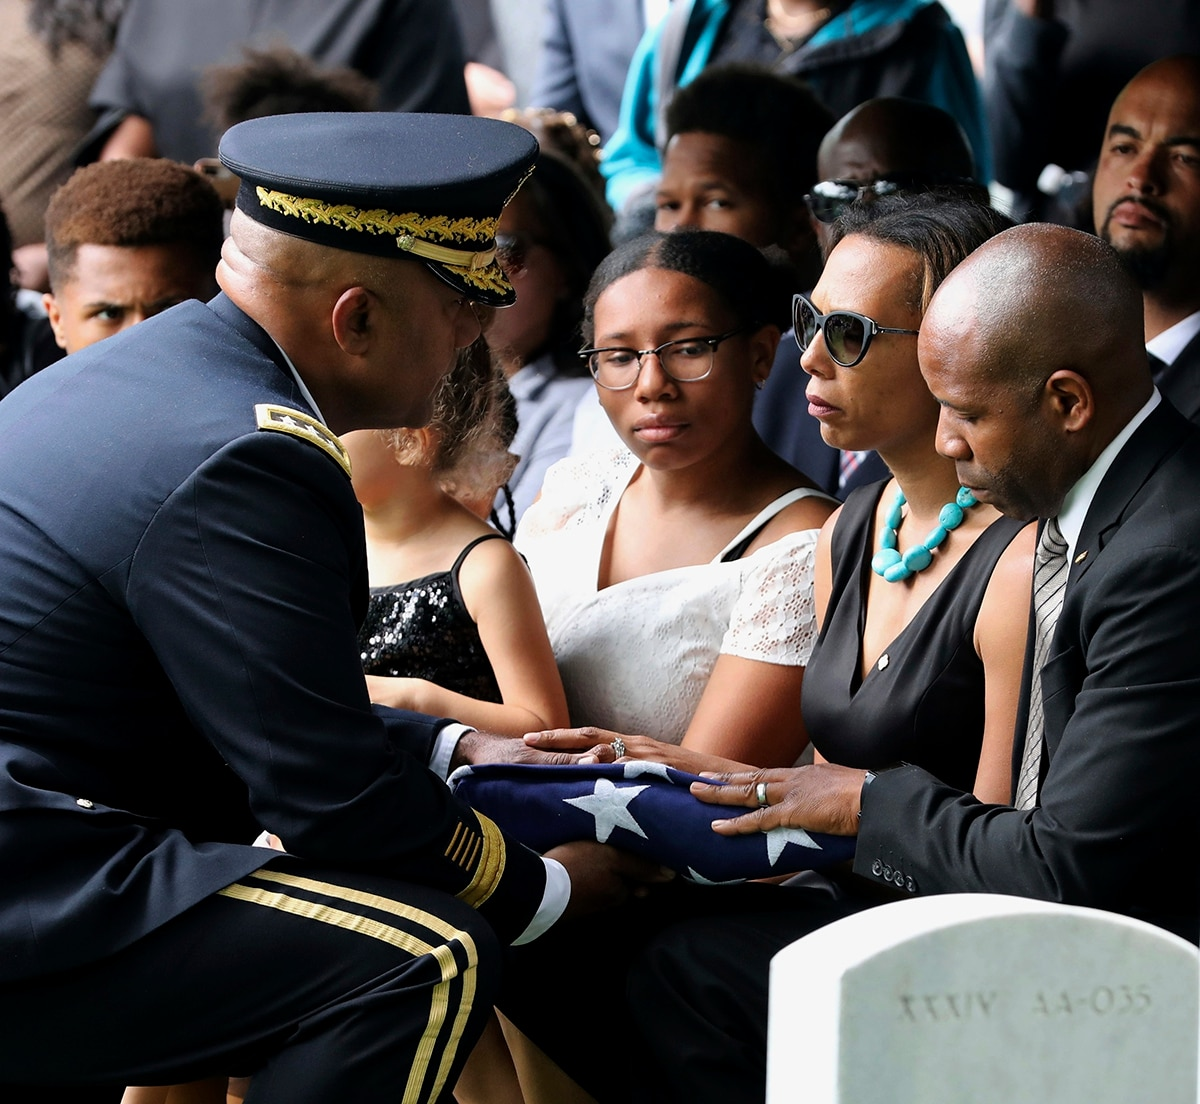 bb55f552760 Funeral held for West Point cadet who died in training